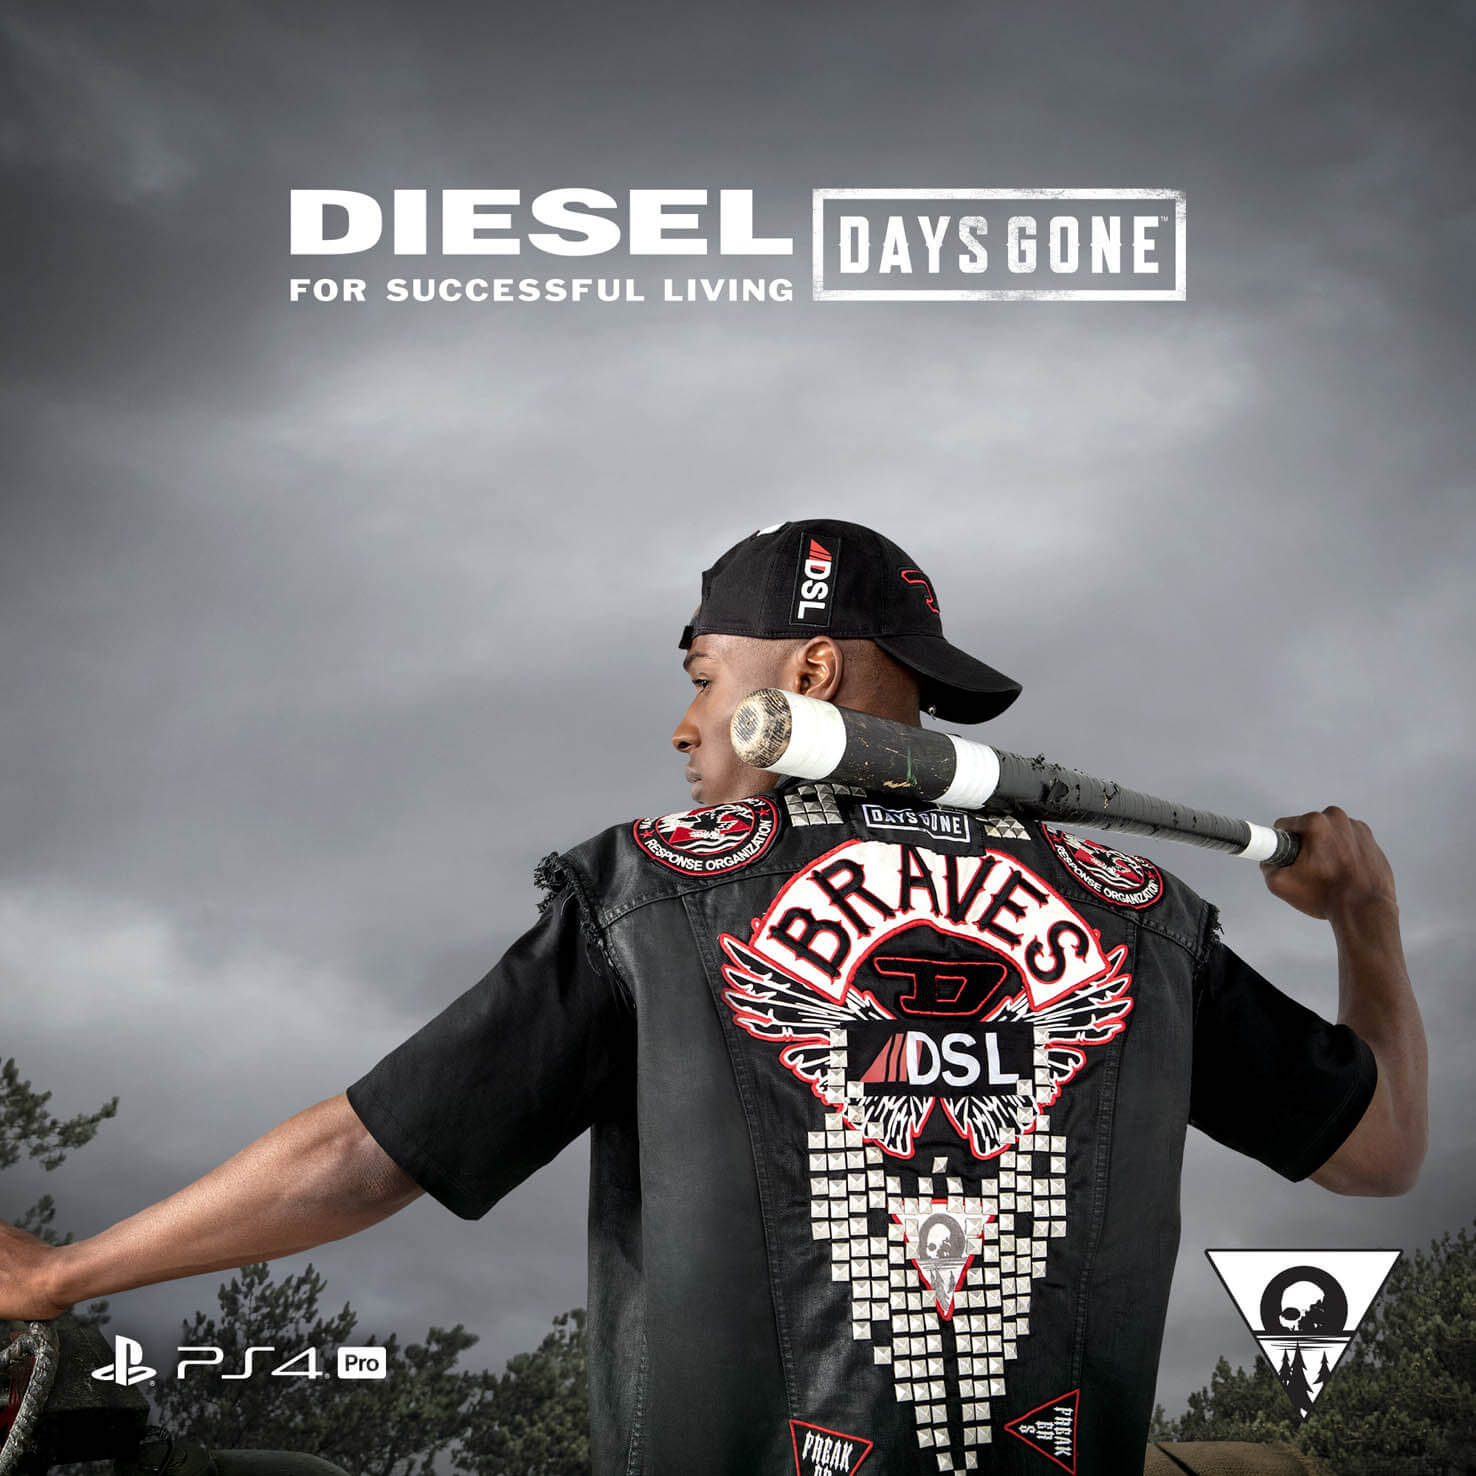 Days Gone Diesel